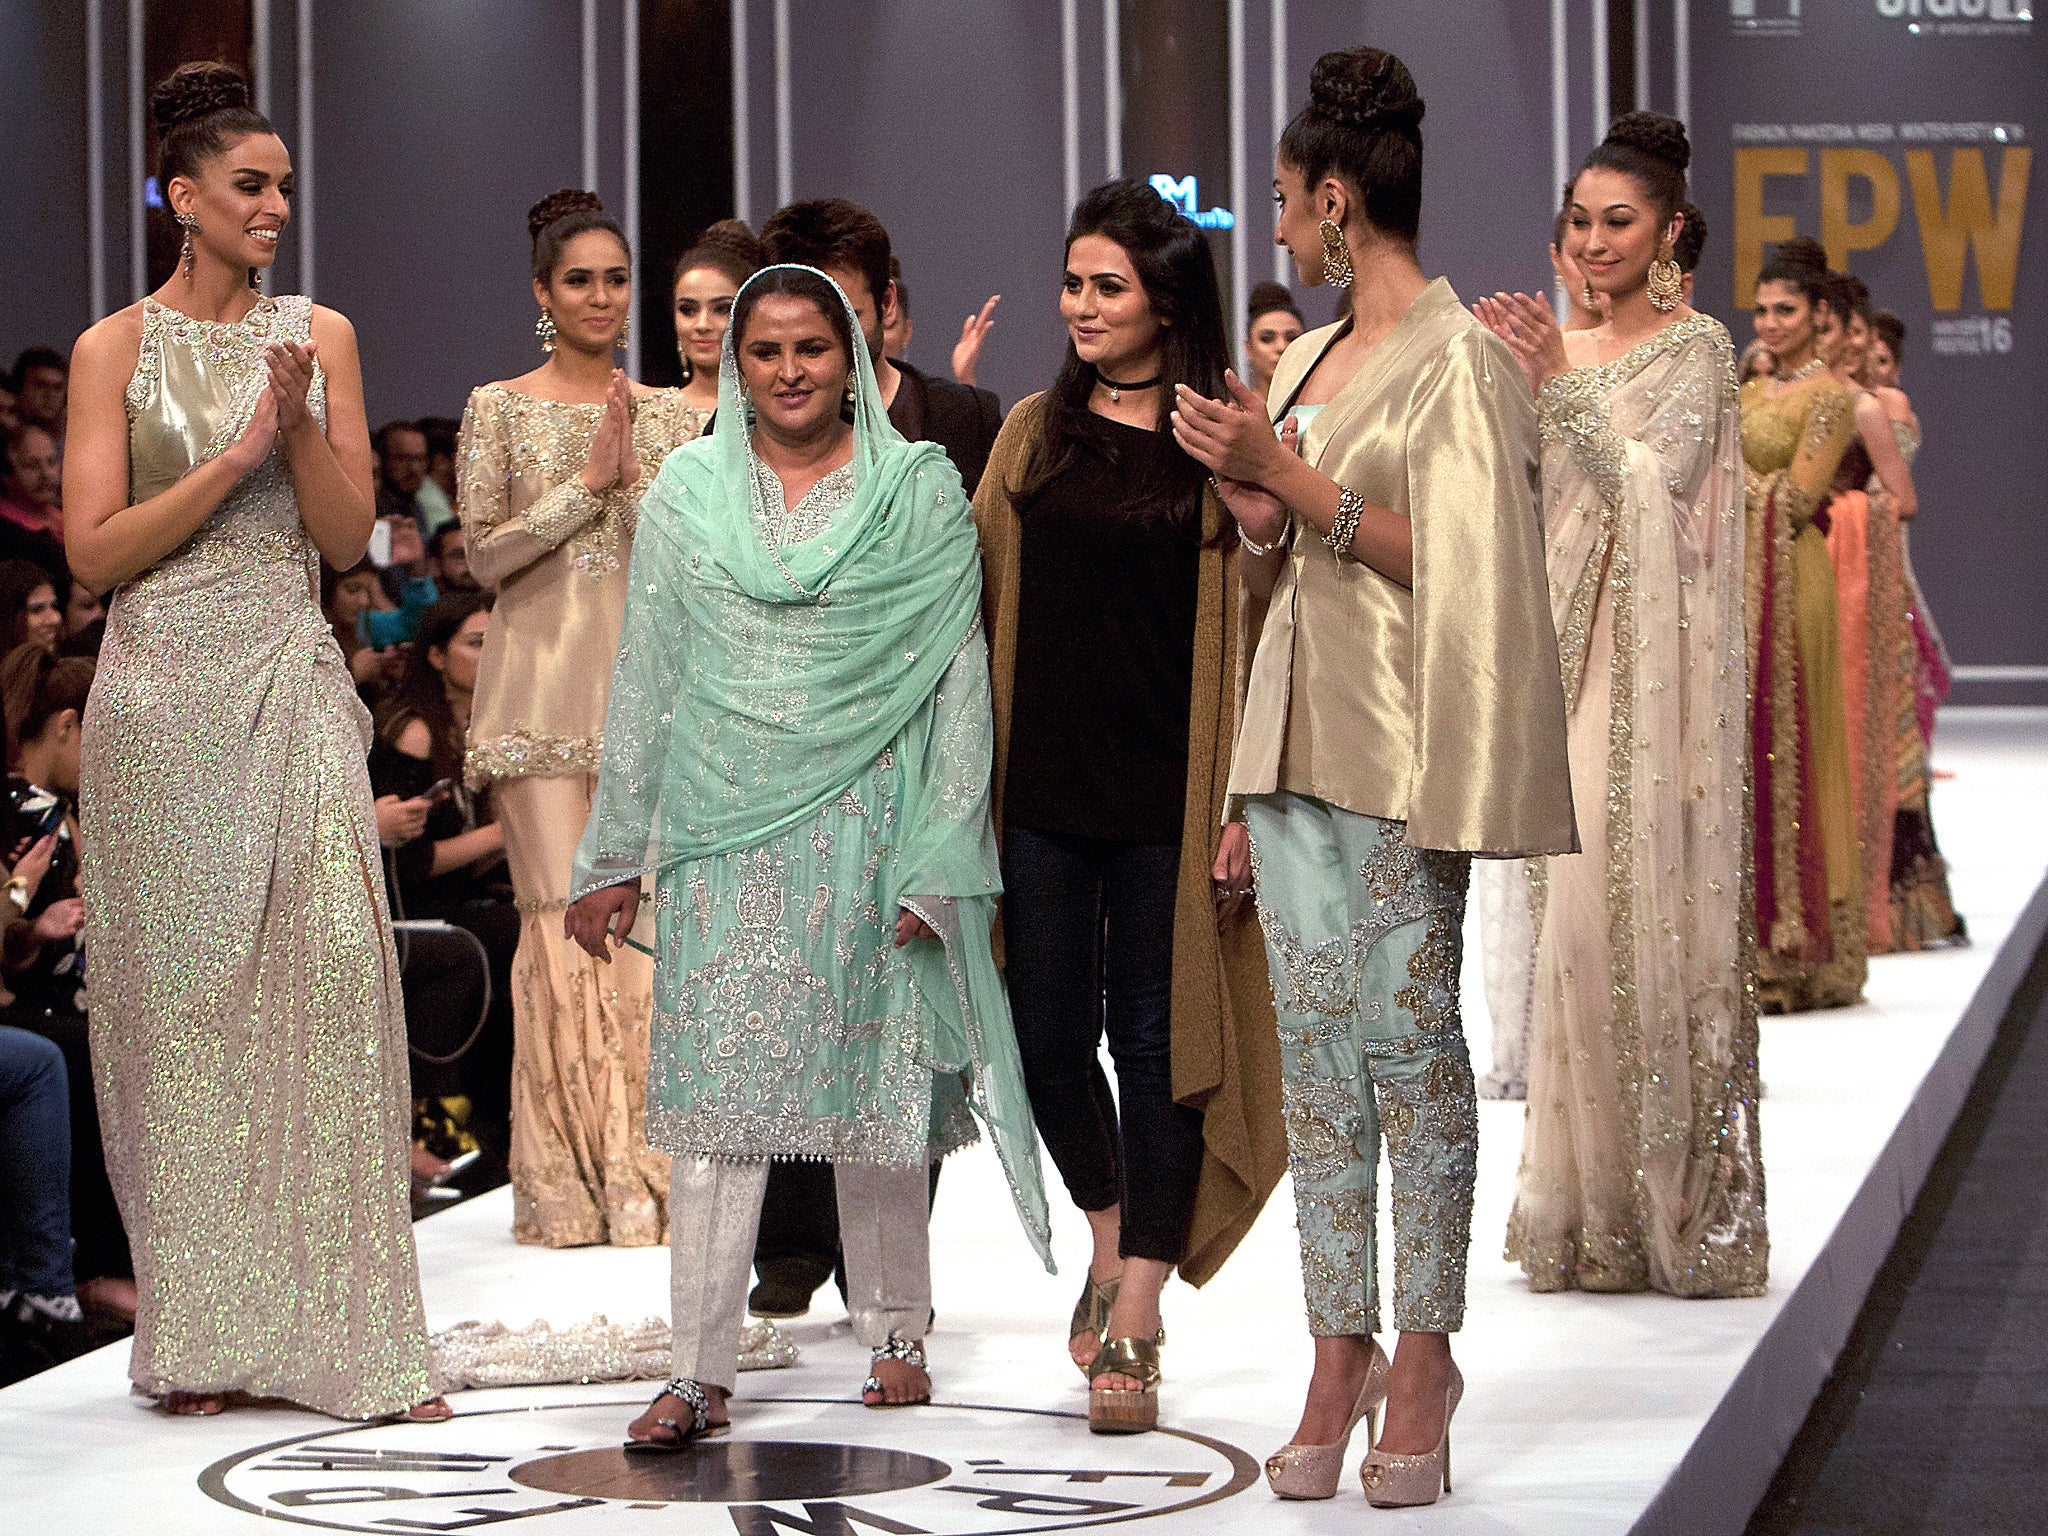 Woman Who Was Gang Raped Takes To Catwalk At Pakistan Fashion Week The Independent The Independent